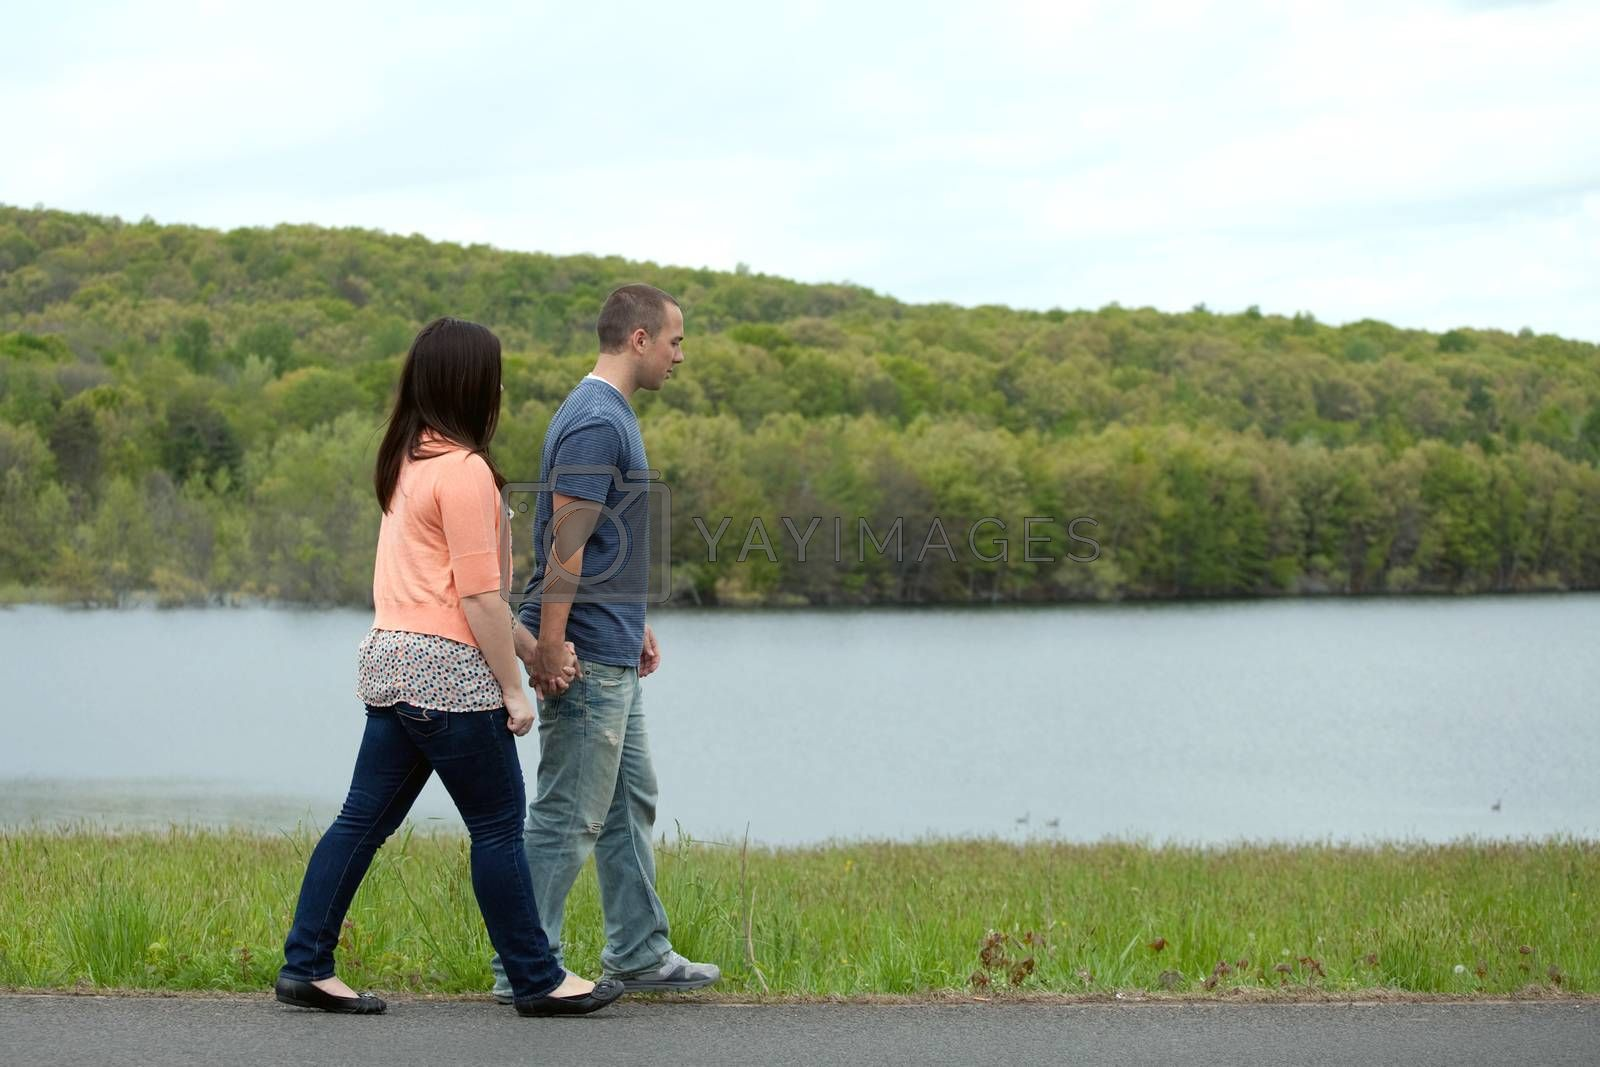 Young happy couple enjoying each others company outdoors walking by the water.